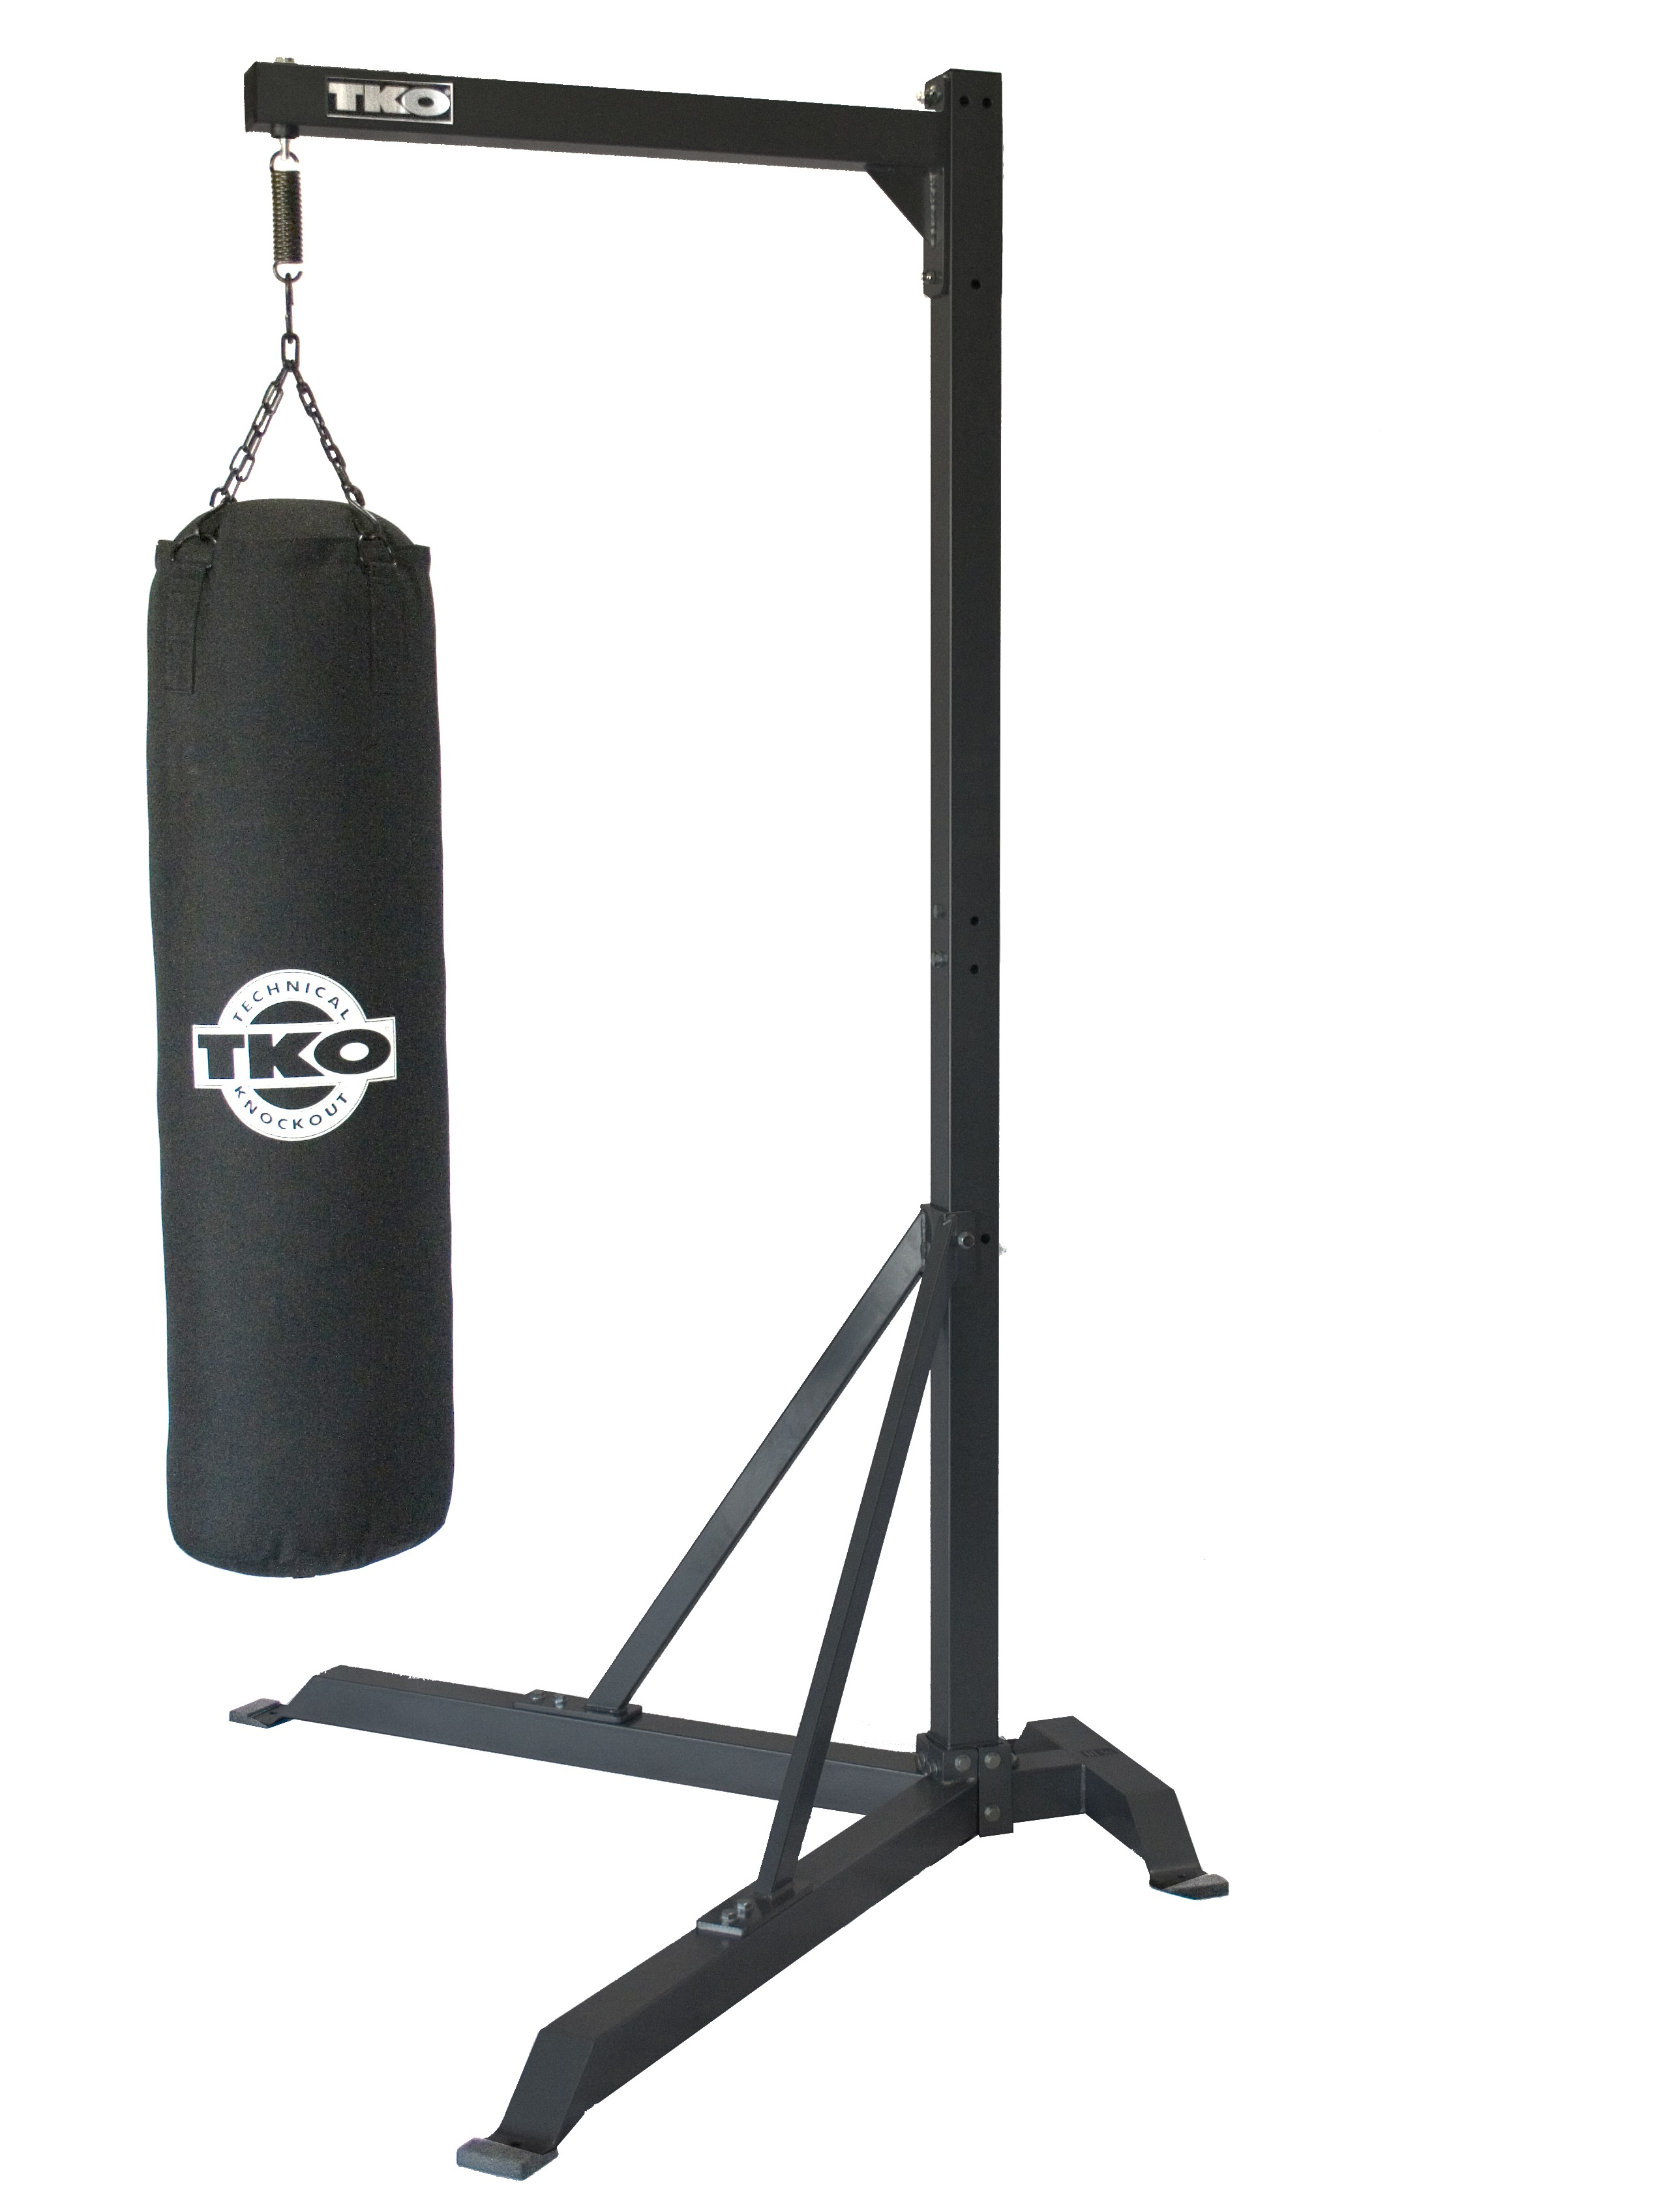 Tko commercial heavy bag stand for Stand commercial